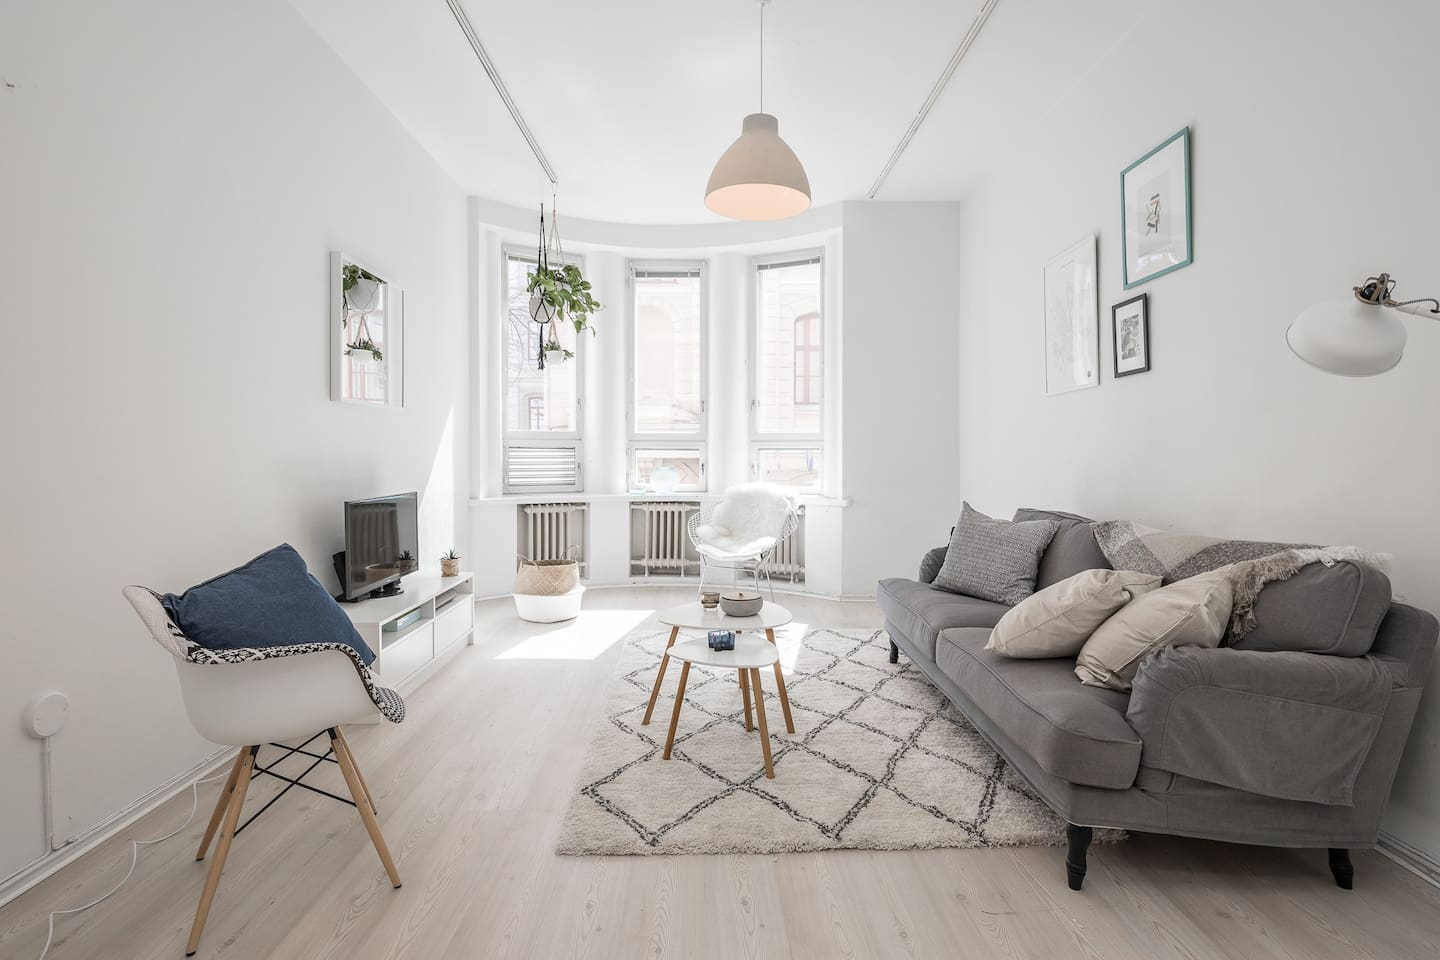 comfortable city home lk36 apartments for rent in helsinki finland